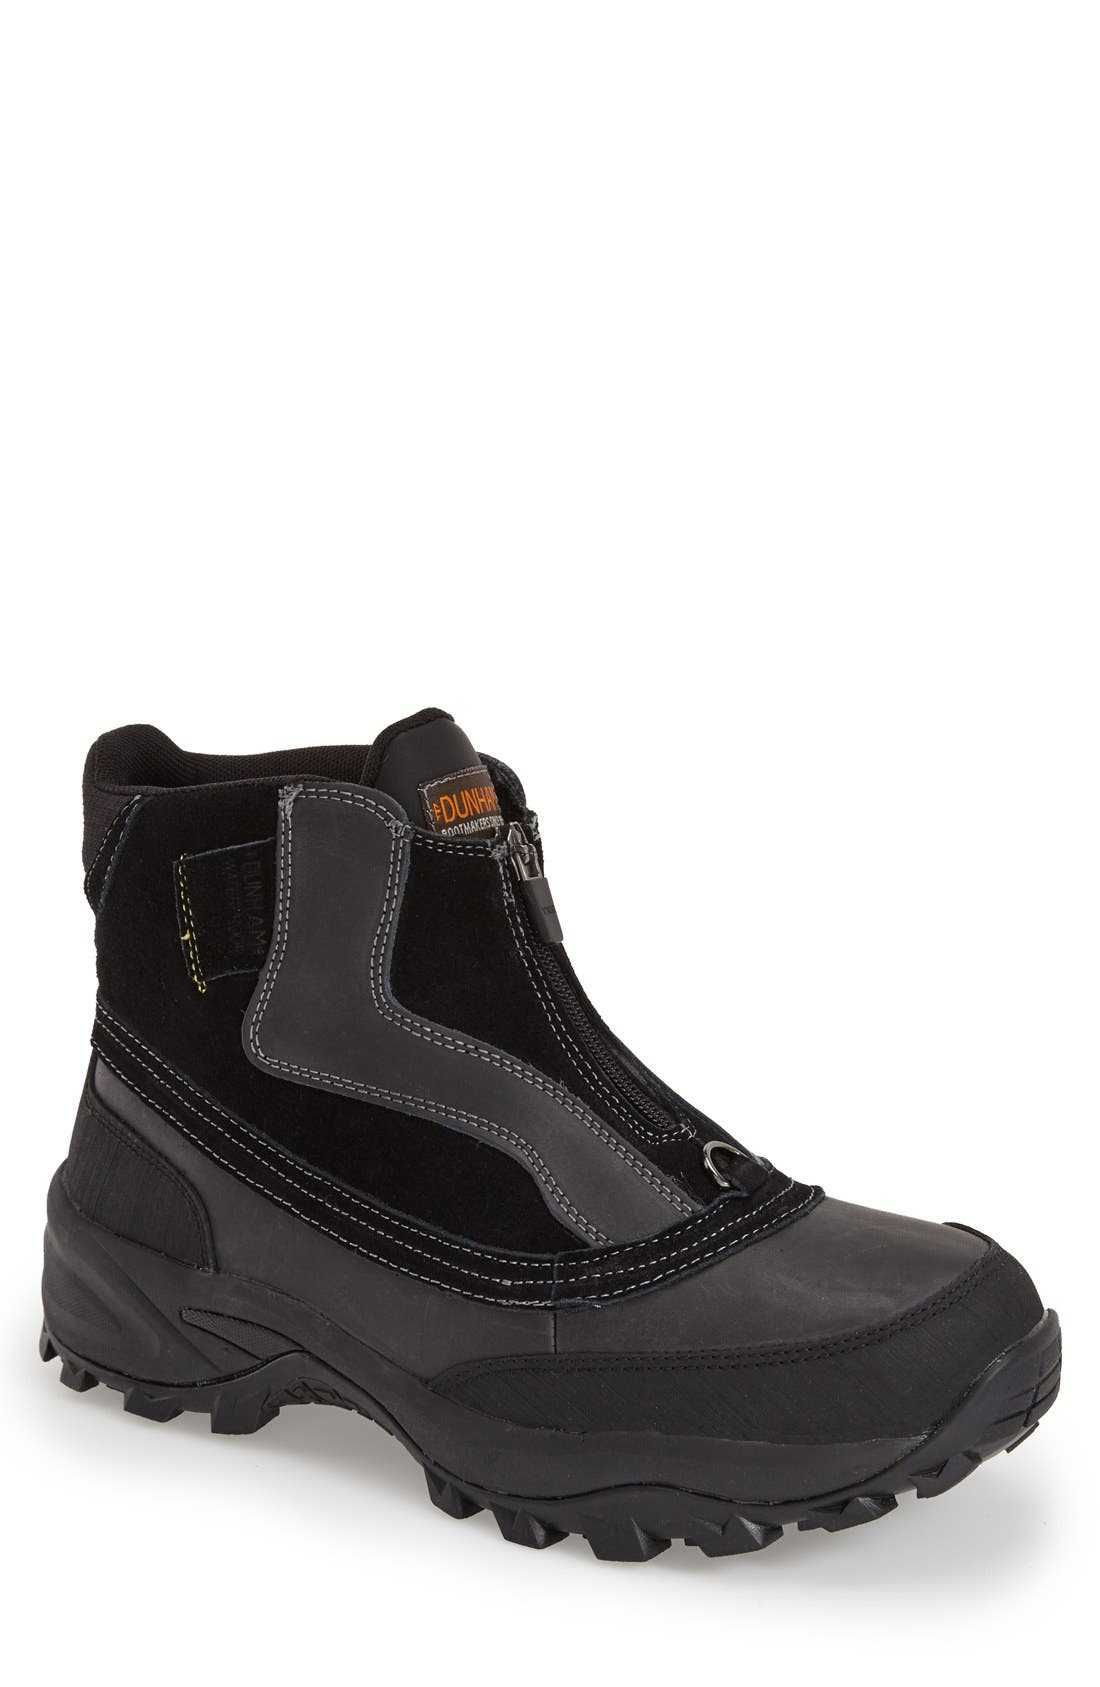 Dunham 'Tony' Waterproof Snow Boot (Men)